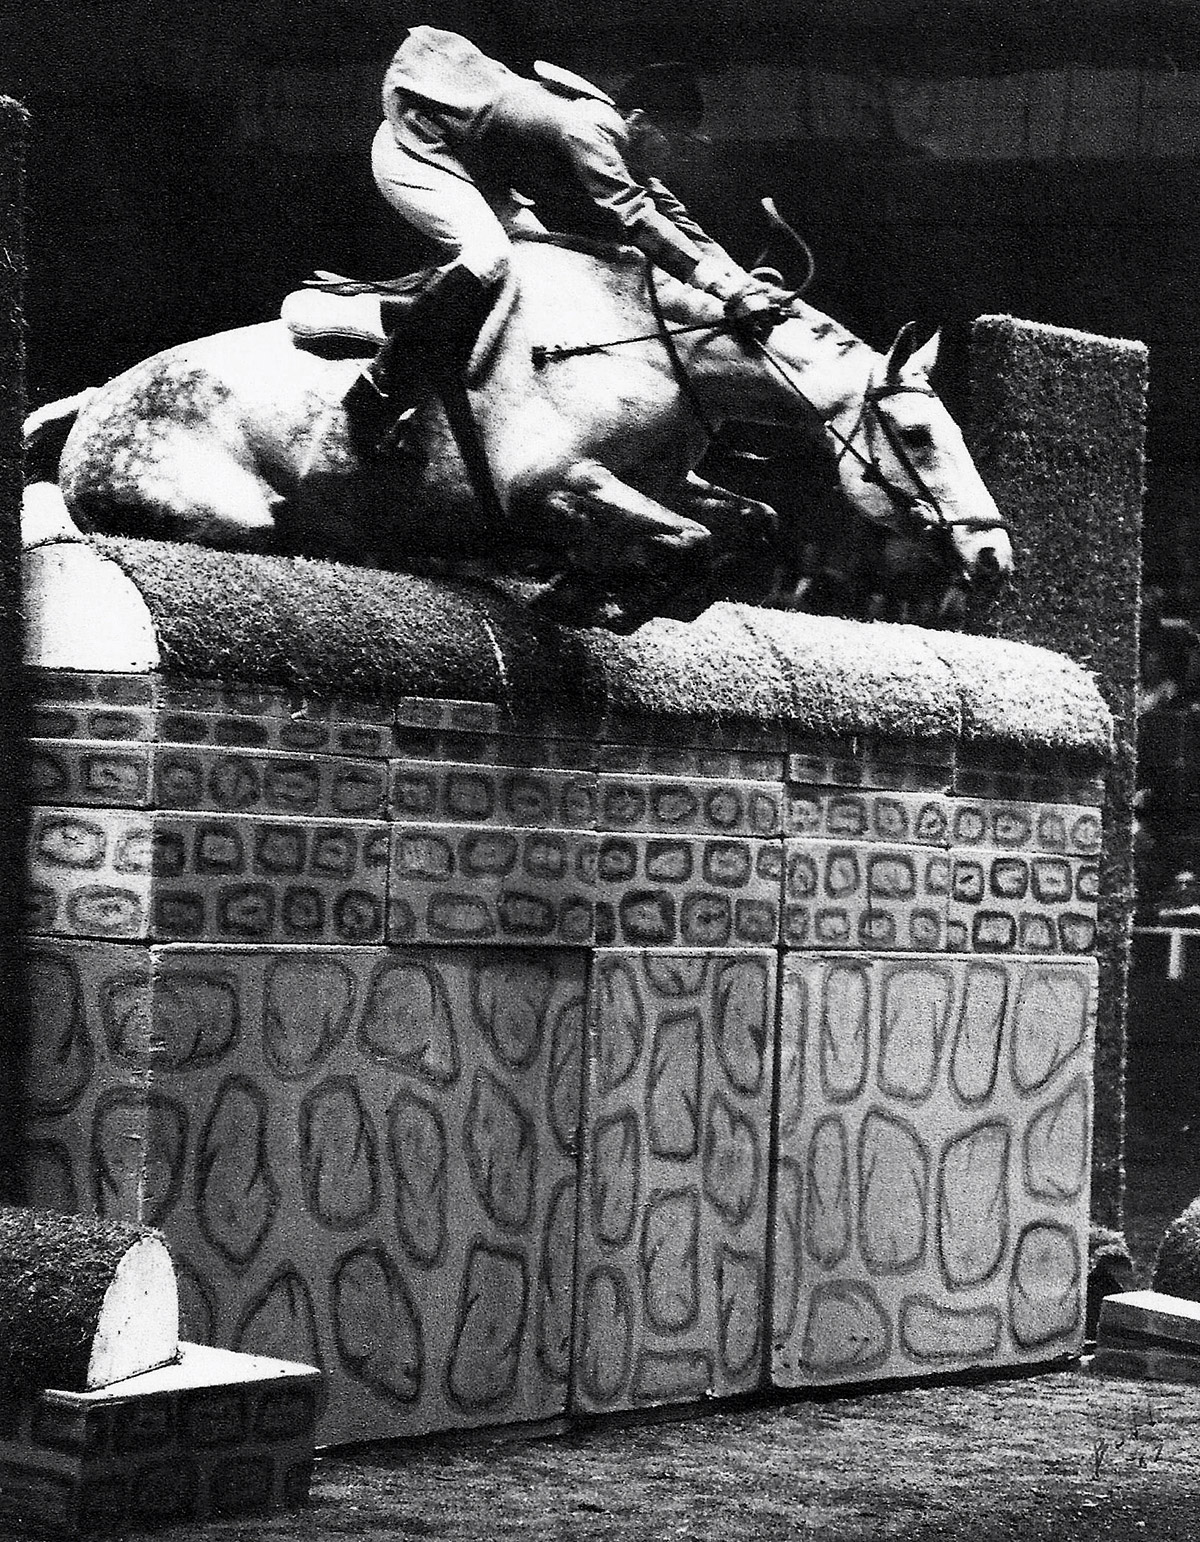 Bill Steinkraus riding Bold Minstrel in the International Puissance at the National Horse Show in 1967.